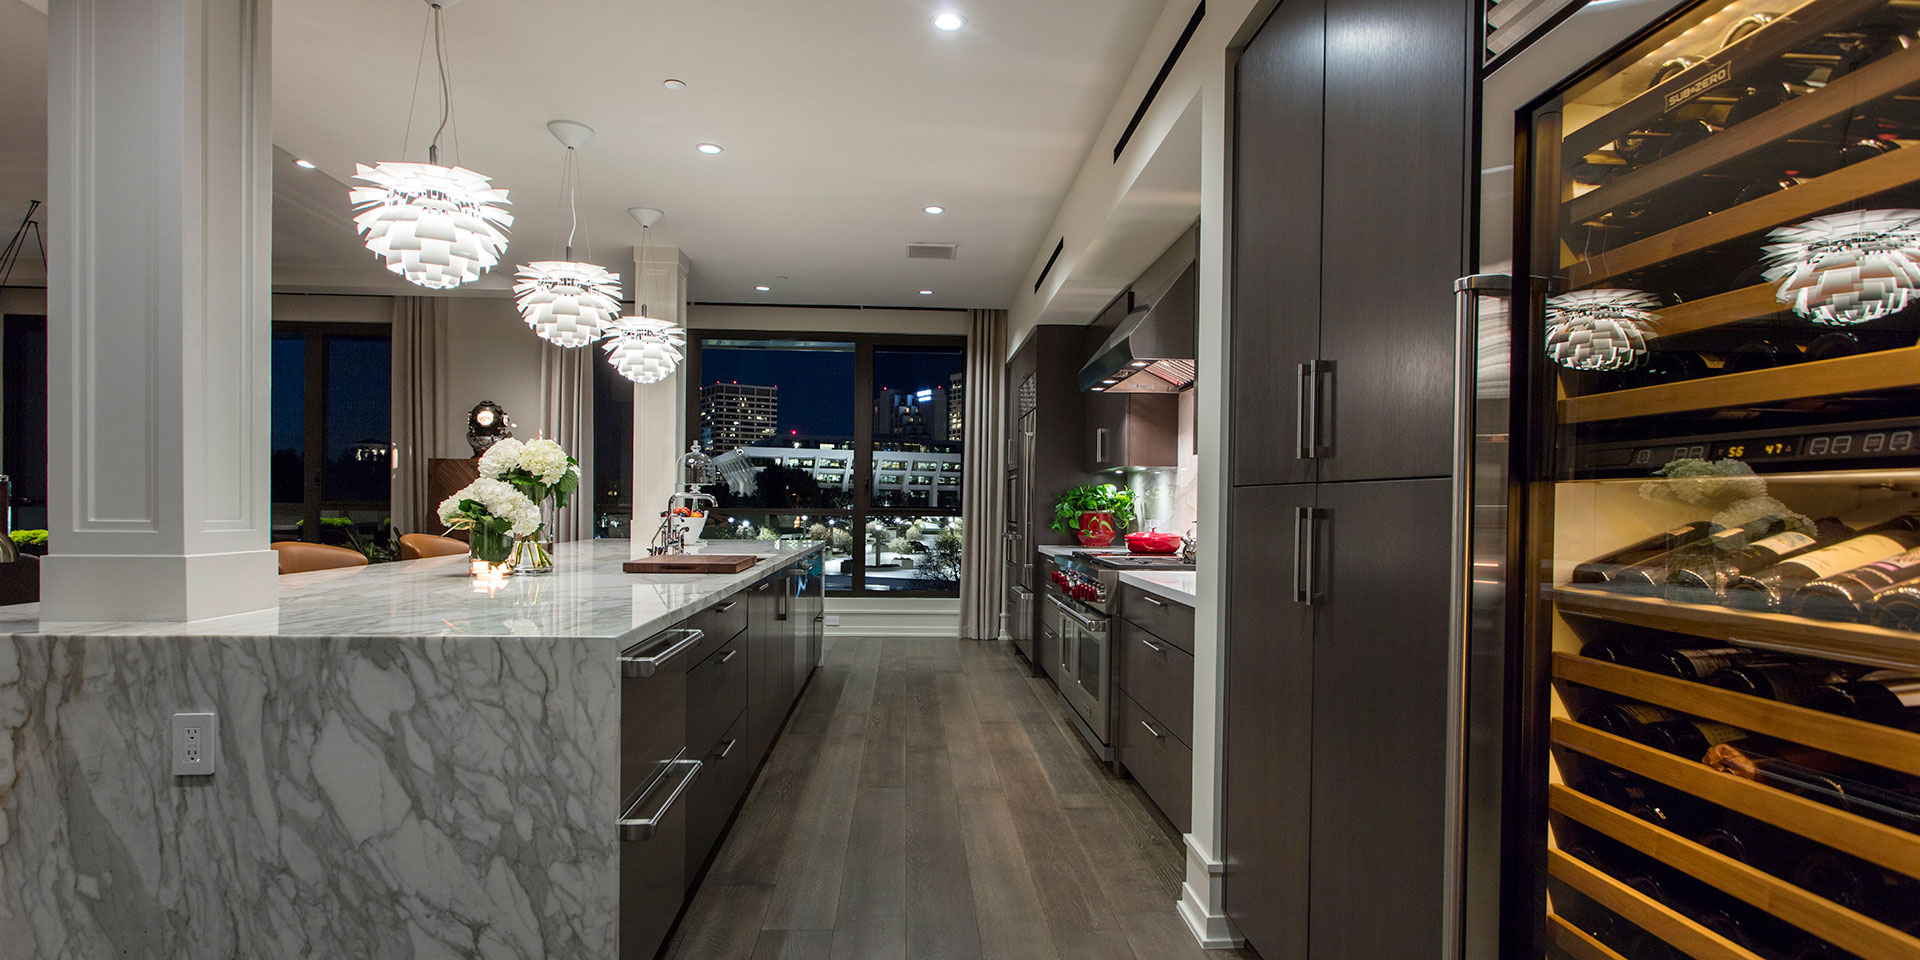 5 Dream Kitchens for the Home Chef